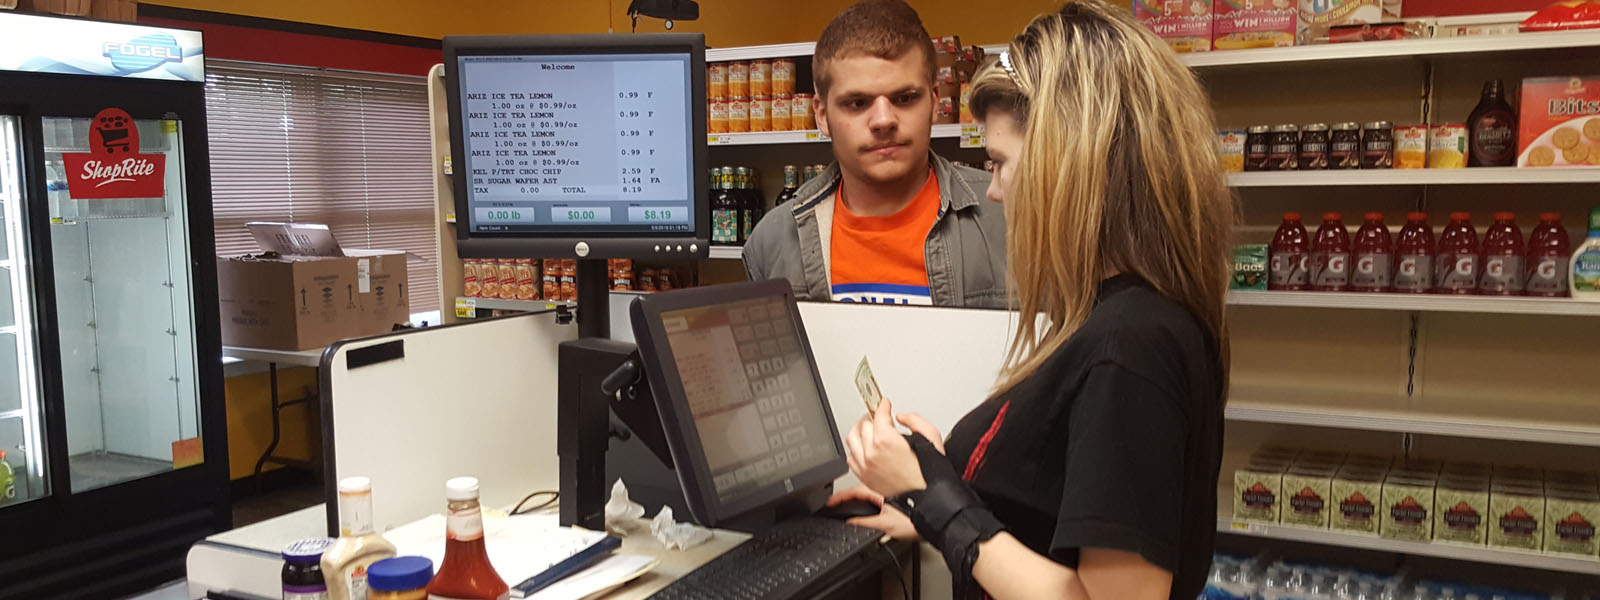 Students working in ShopRite store - New Road School Parlin - - private special education school in Parlin NJ